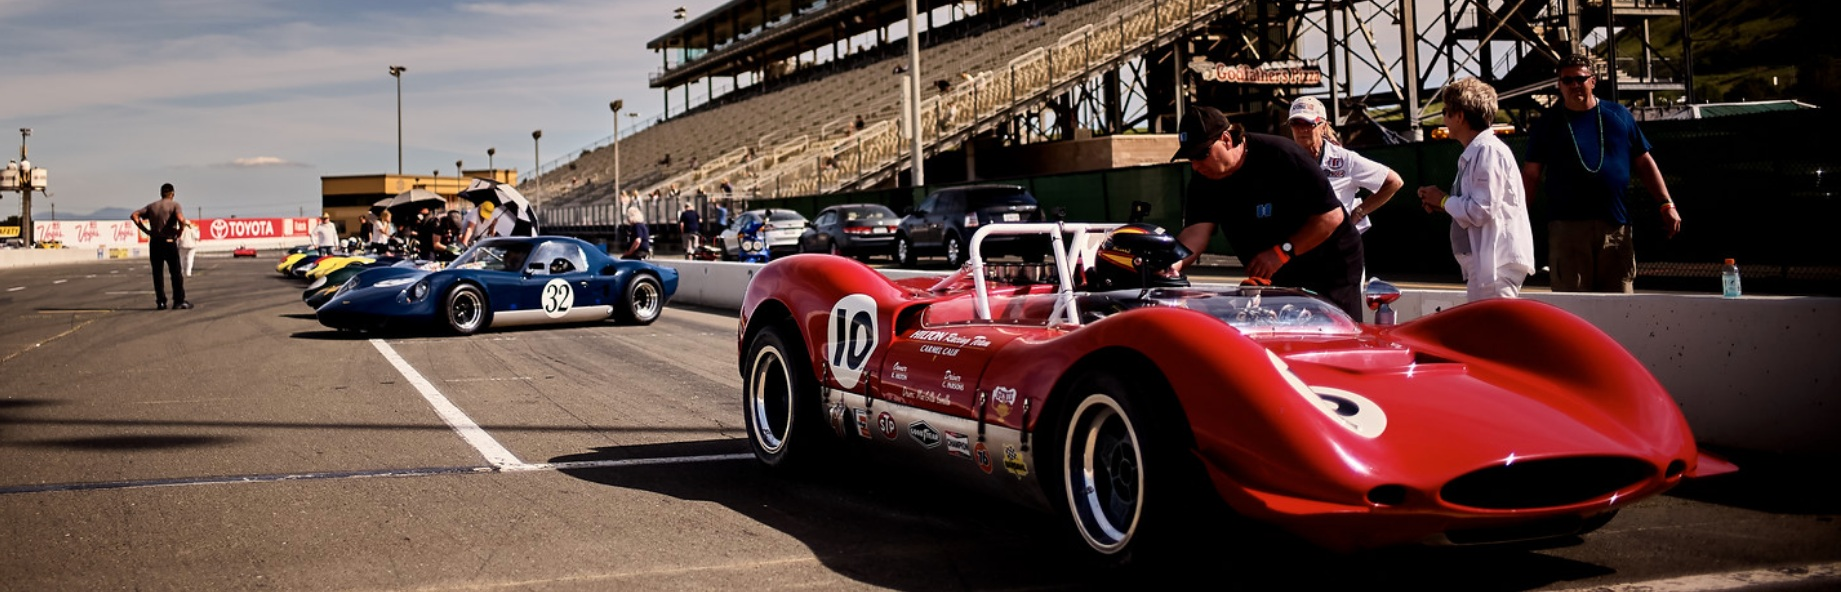 24 USRRC Tribute cars lined up to kick off a new series